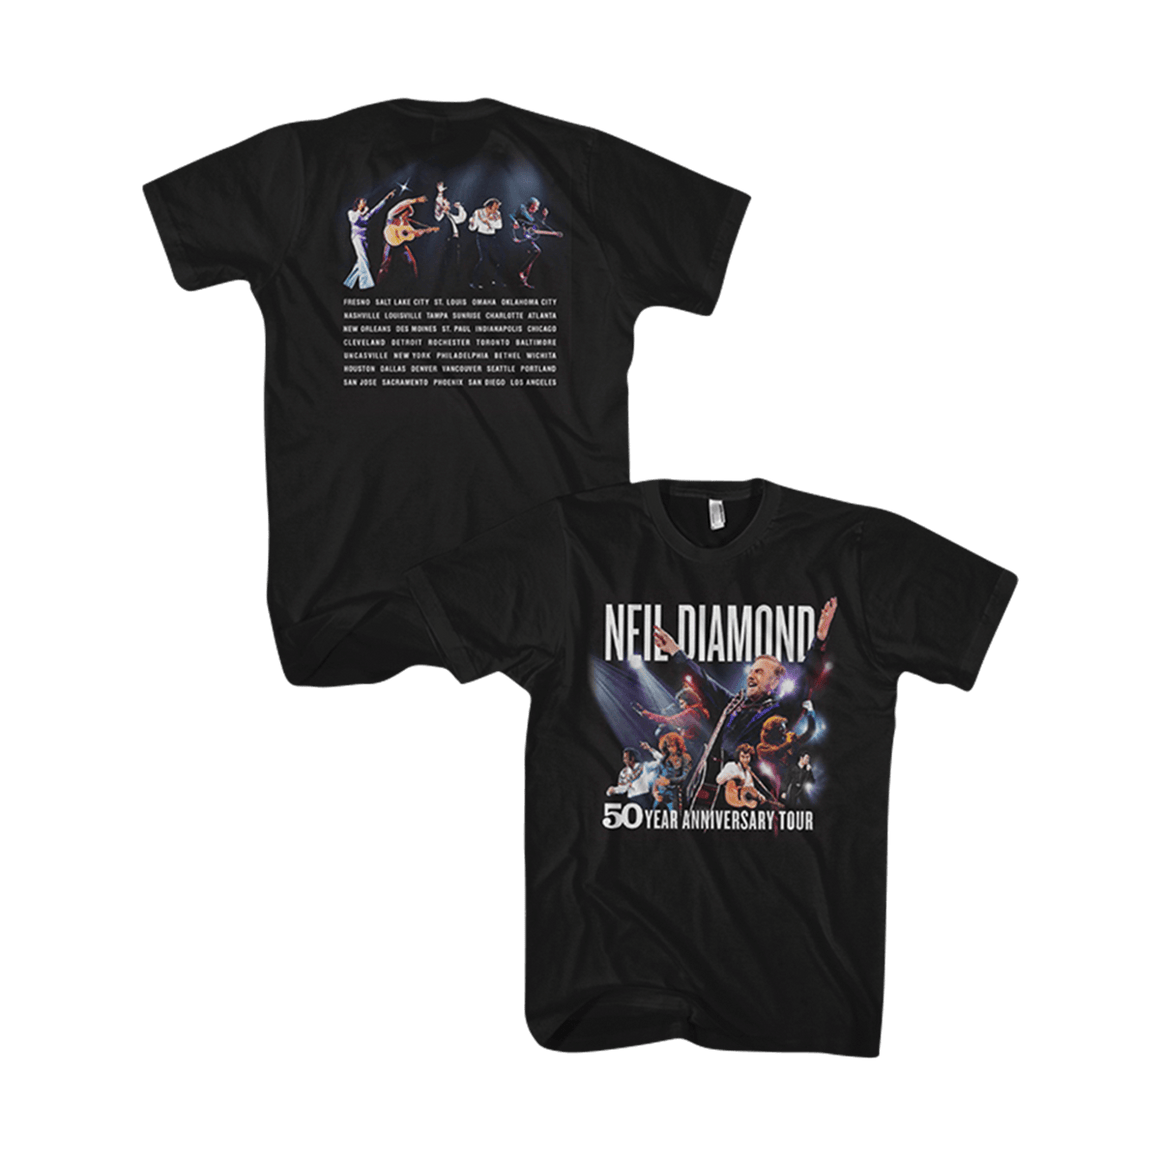 Photo Tour Tee-Neil Diamond